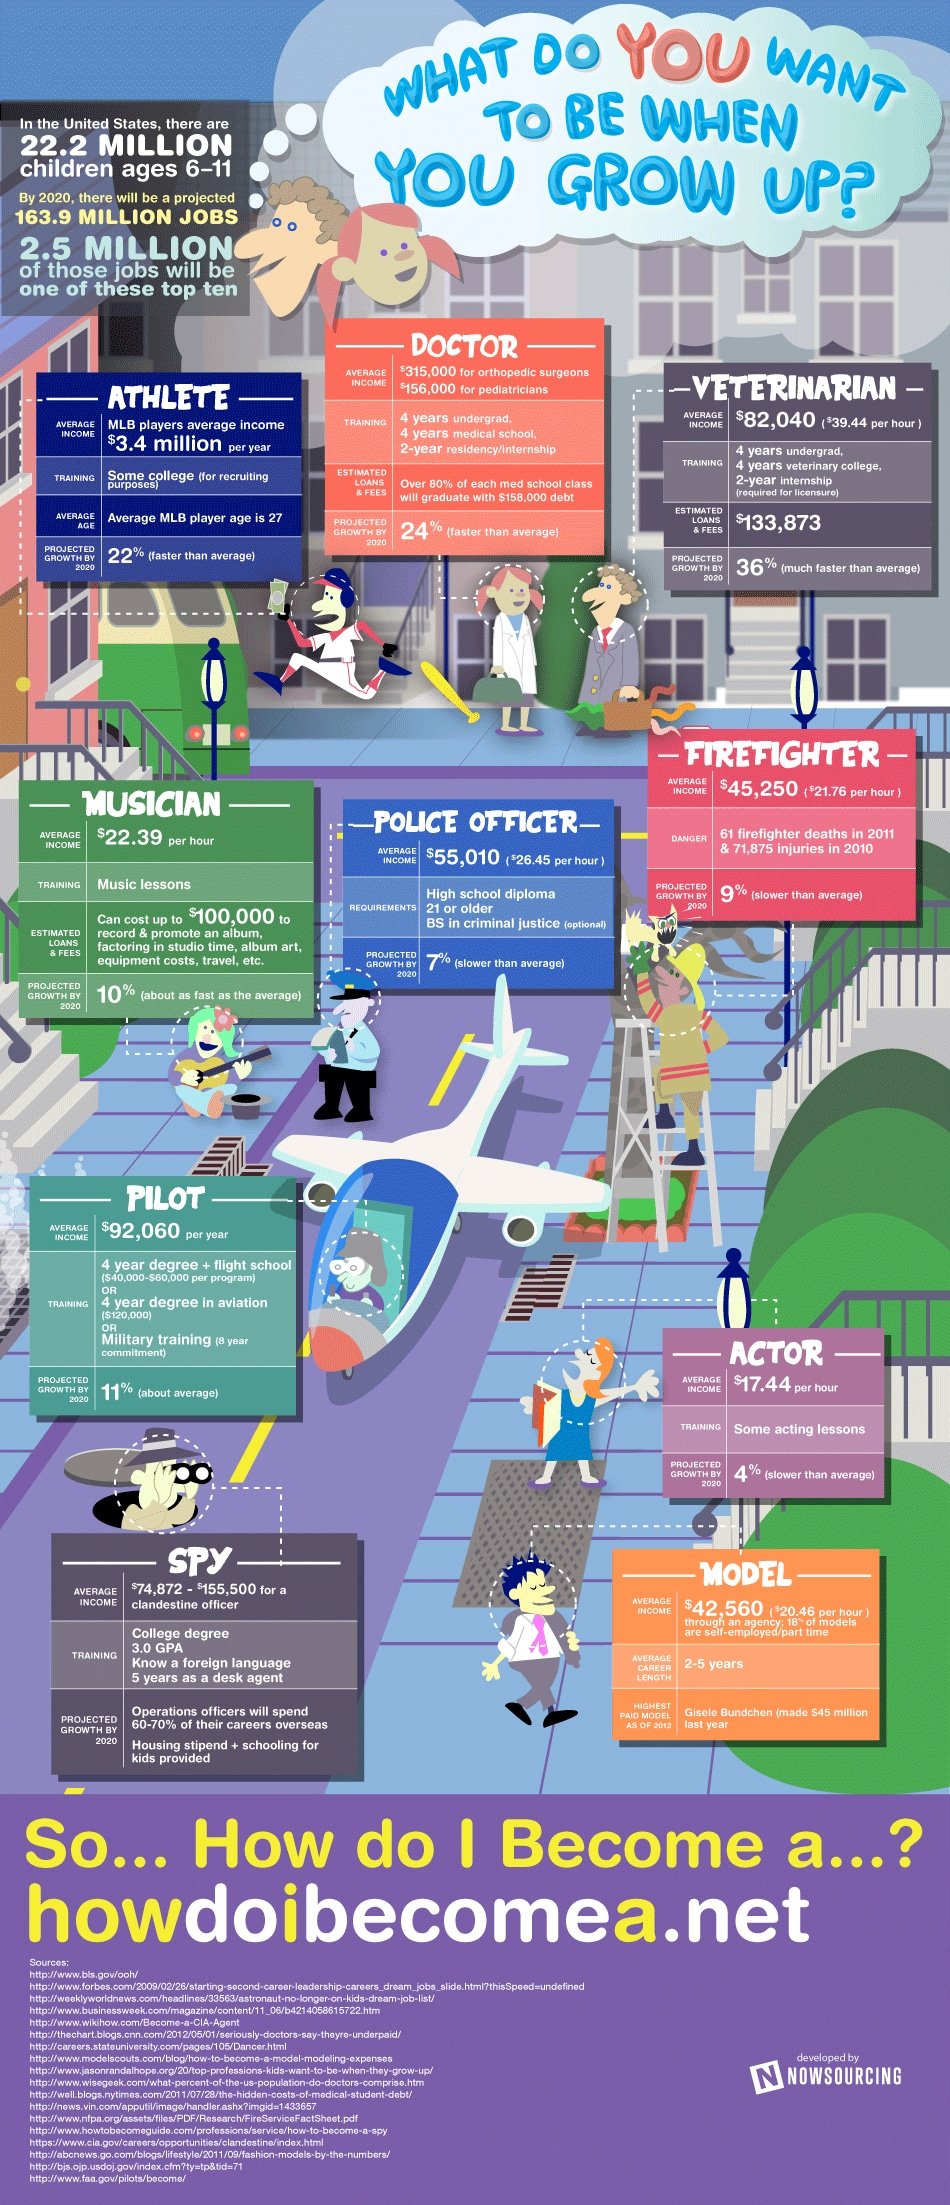 Career Choices: What Will You Be When You Grow Up? [Infographic]